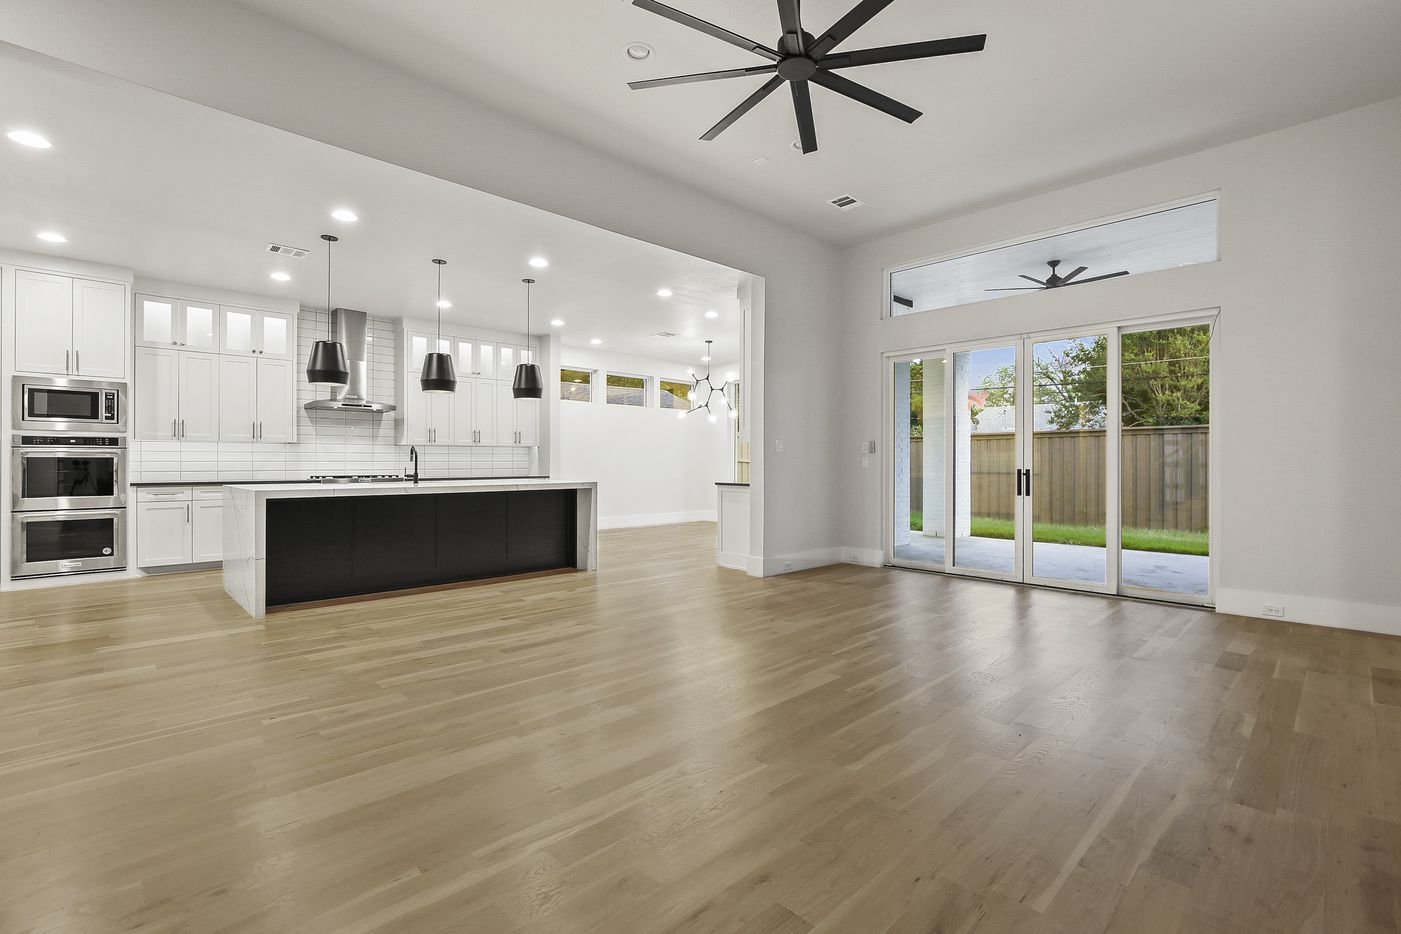 A look at the interior of 3842 Dunhaven Road in Dallas, TX.